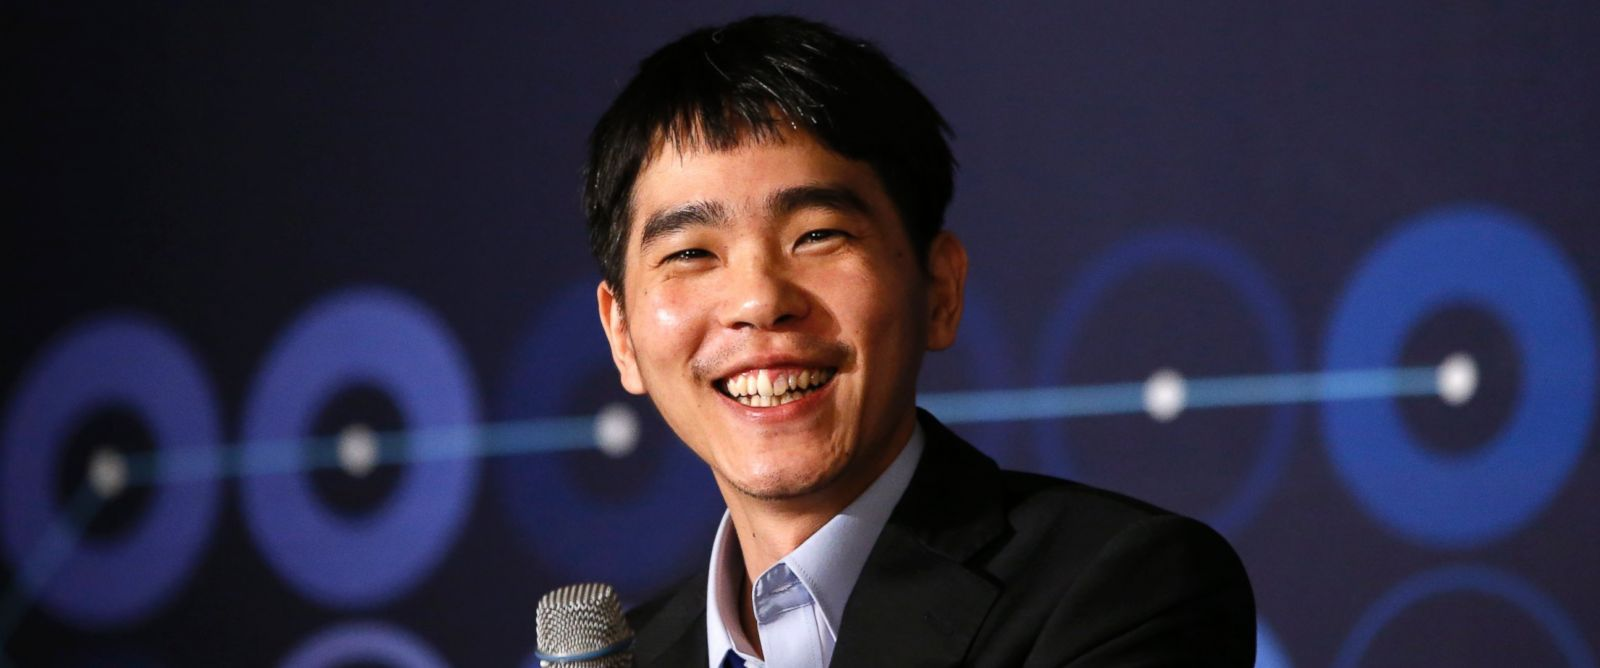 PHOTO: Go world champion Lee Sedol lost the first three games of the Google DeepMind Challenge but fought back to win the fourth one.